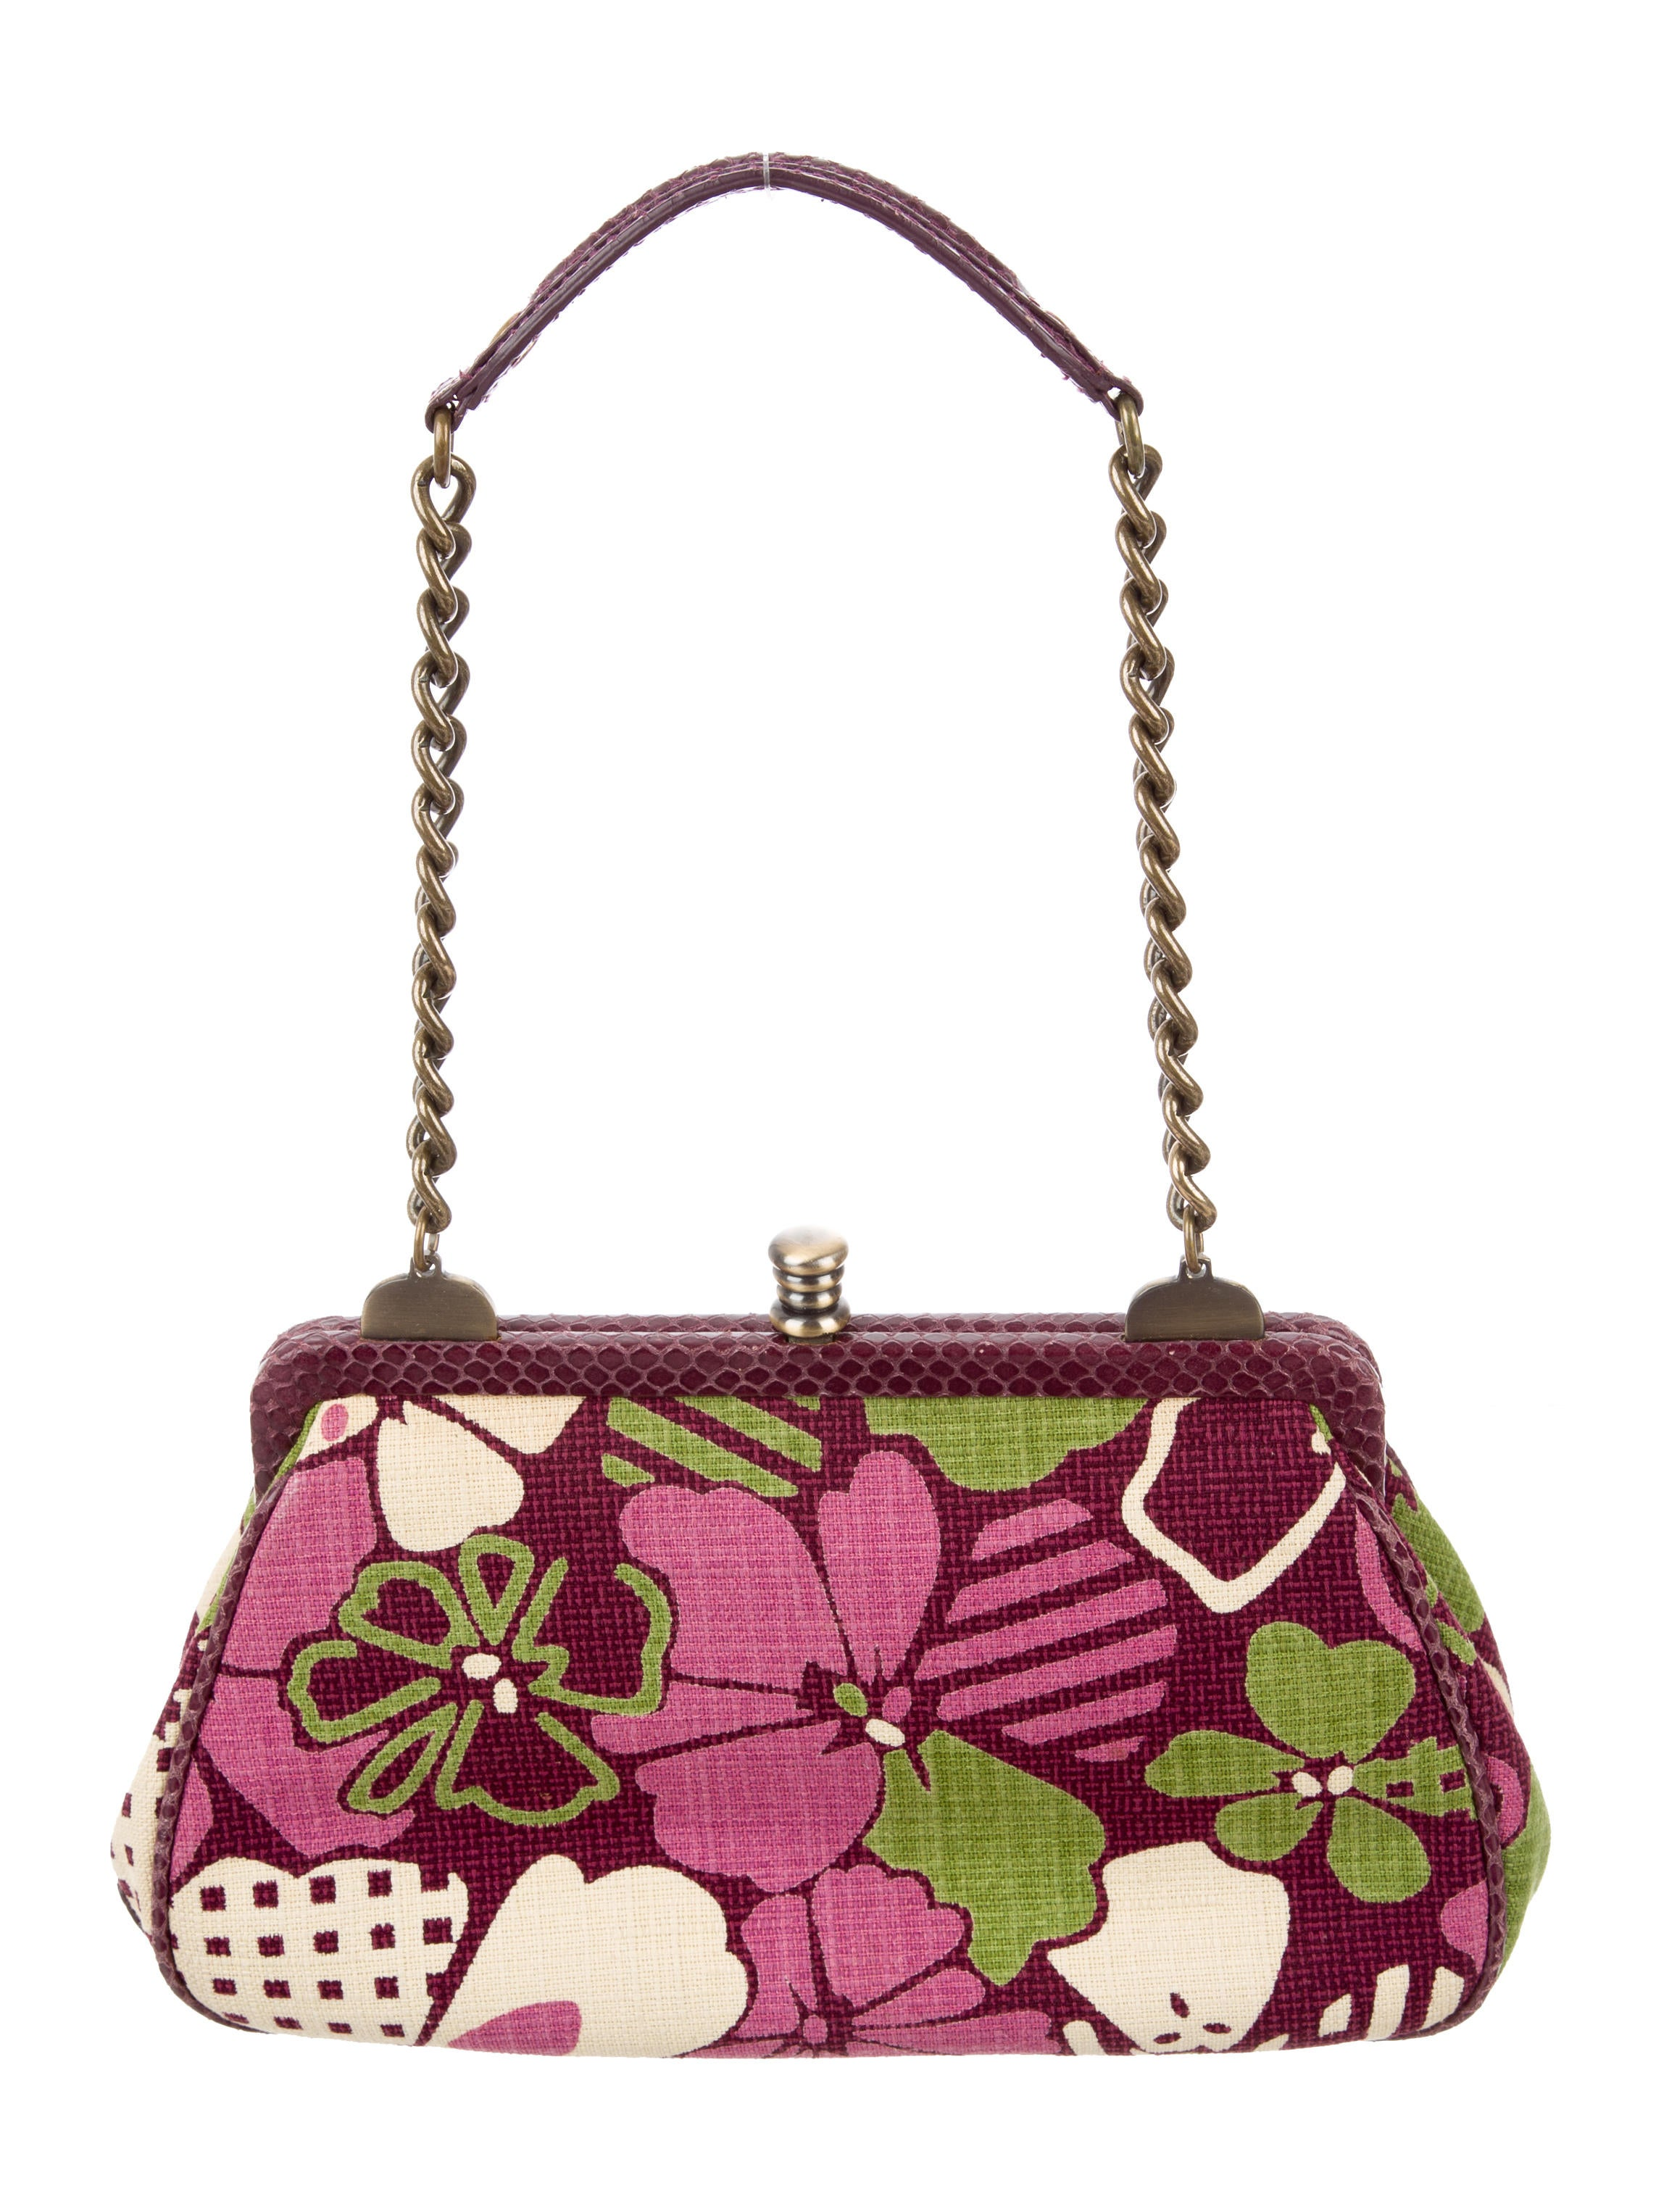 Isabella Fiore Bead-Embellished Woven Bag